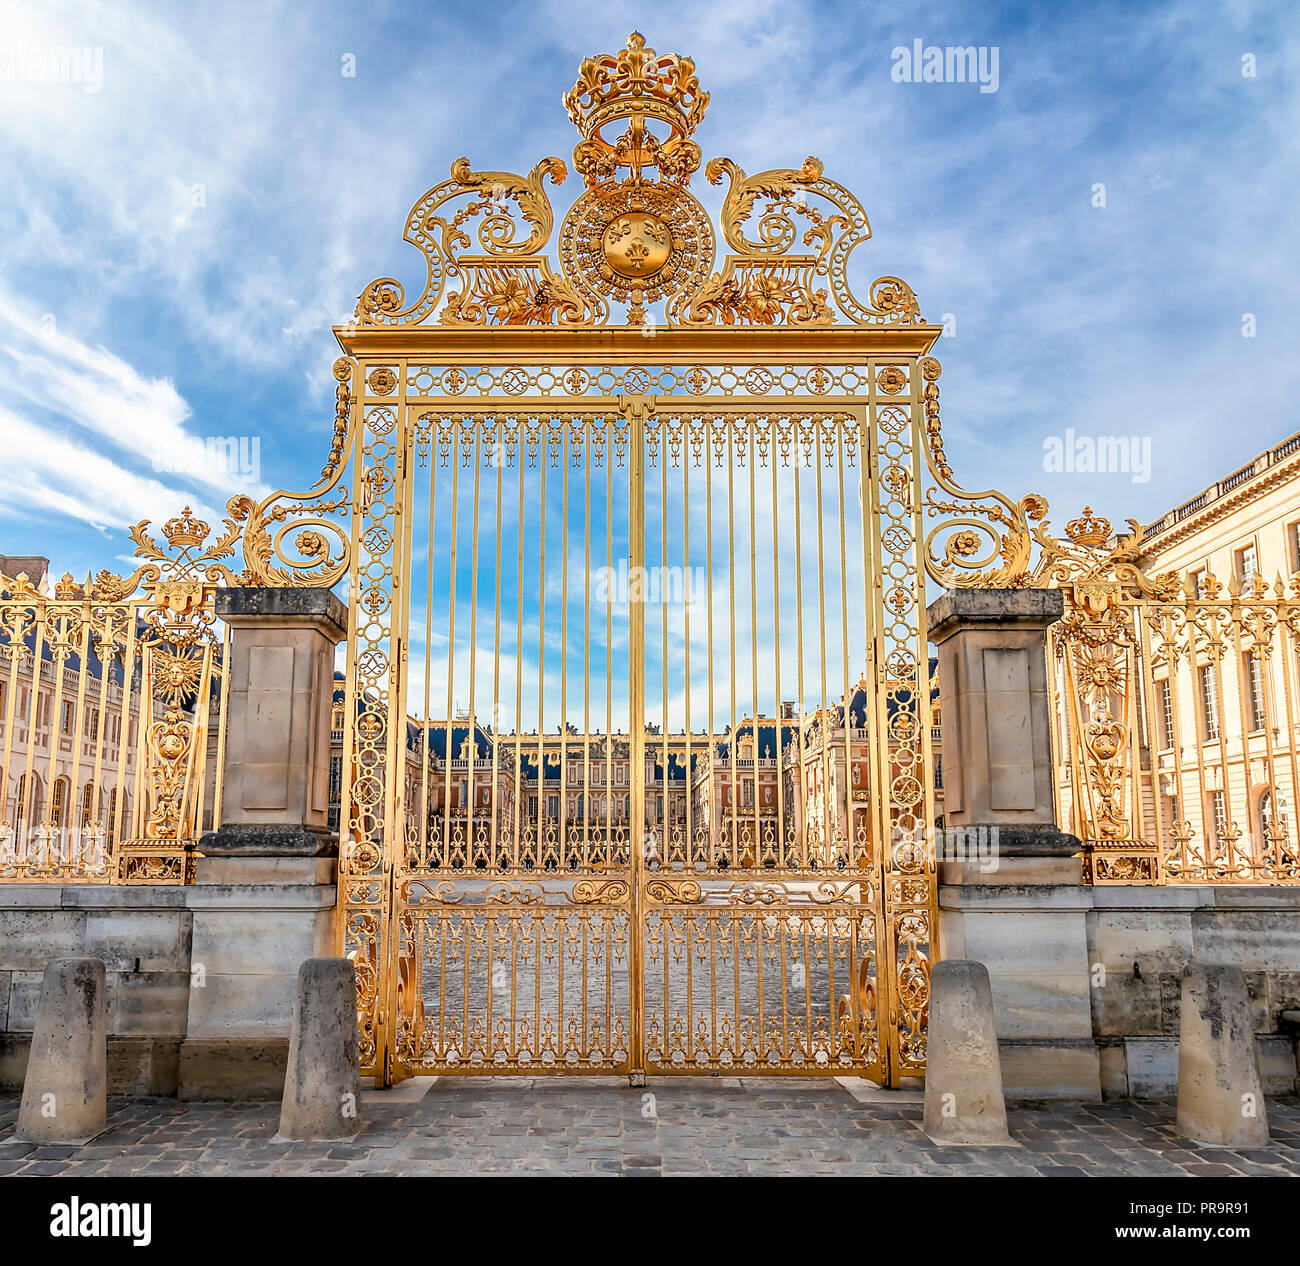 Main golden door in exterior facade of Versailles Palace, Paris, France Stock Photo